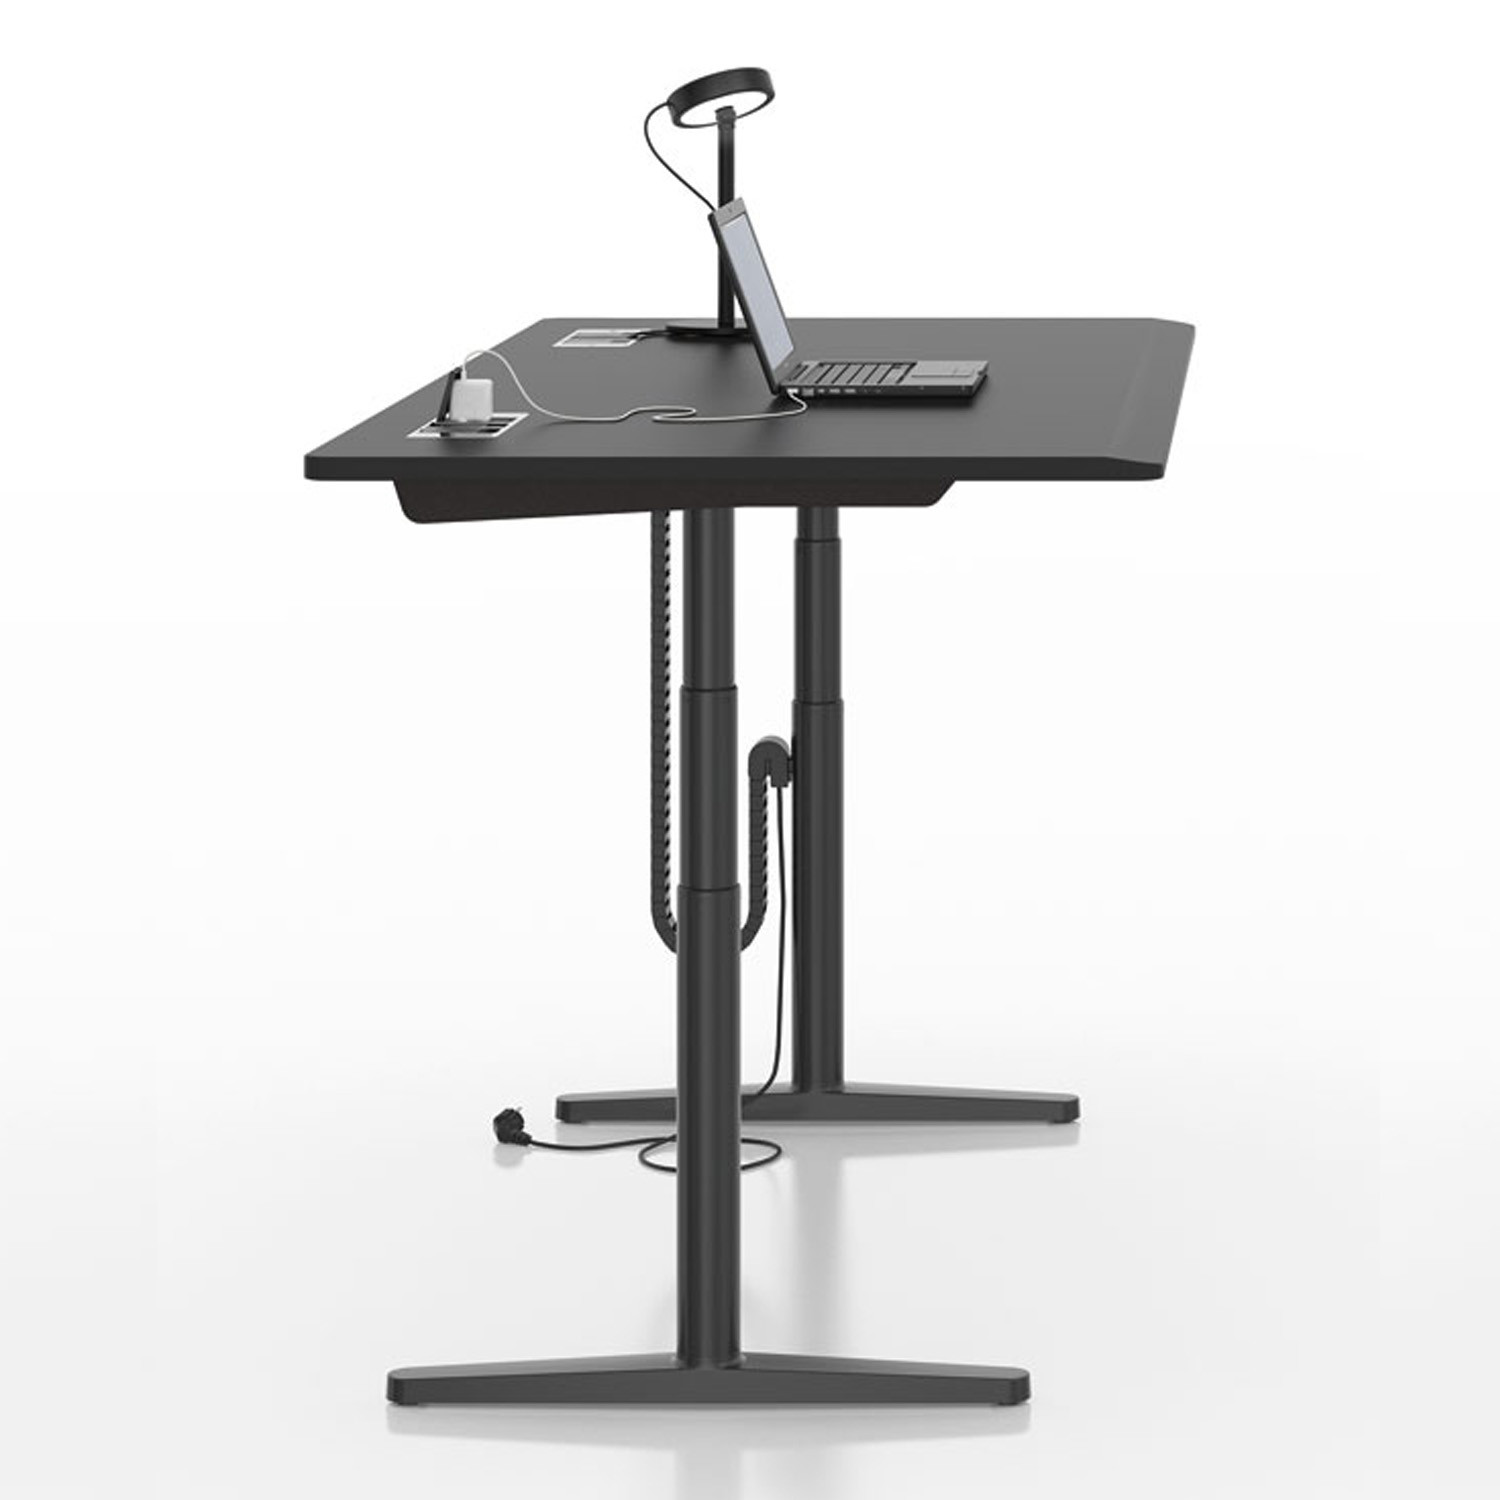 Tyde Sit-Stand Adjustable Desk